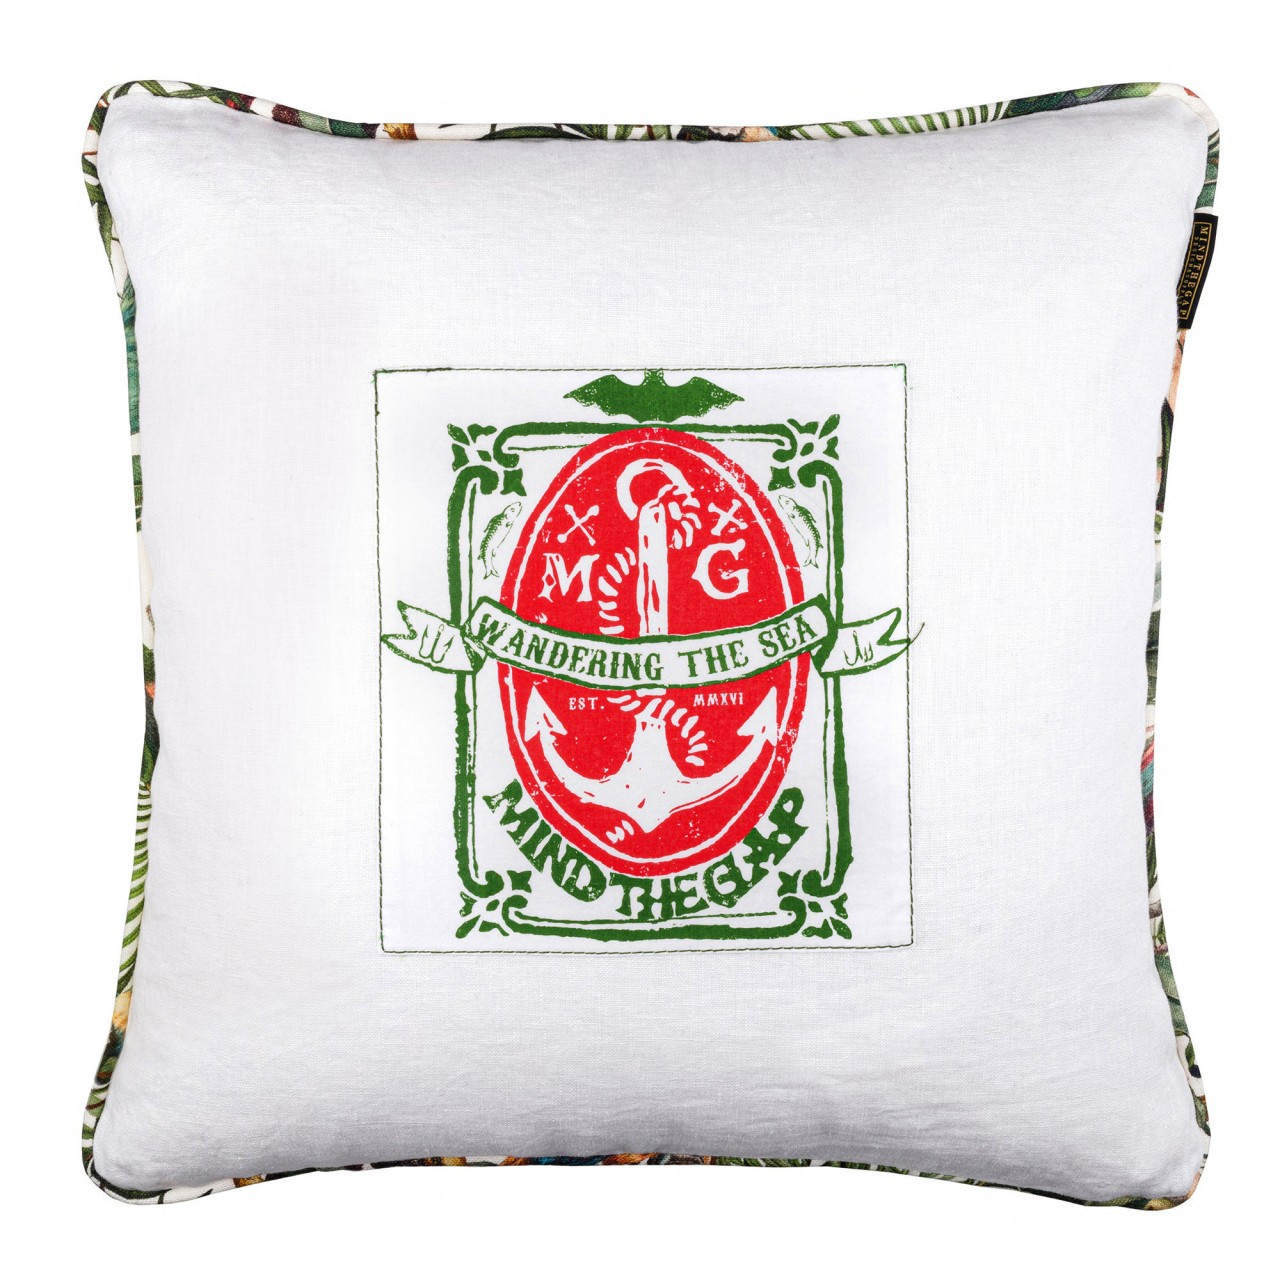 WANDERING THE SEA Cushion